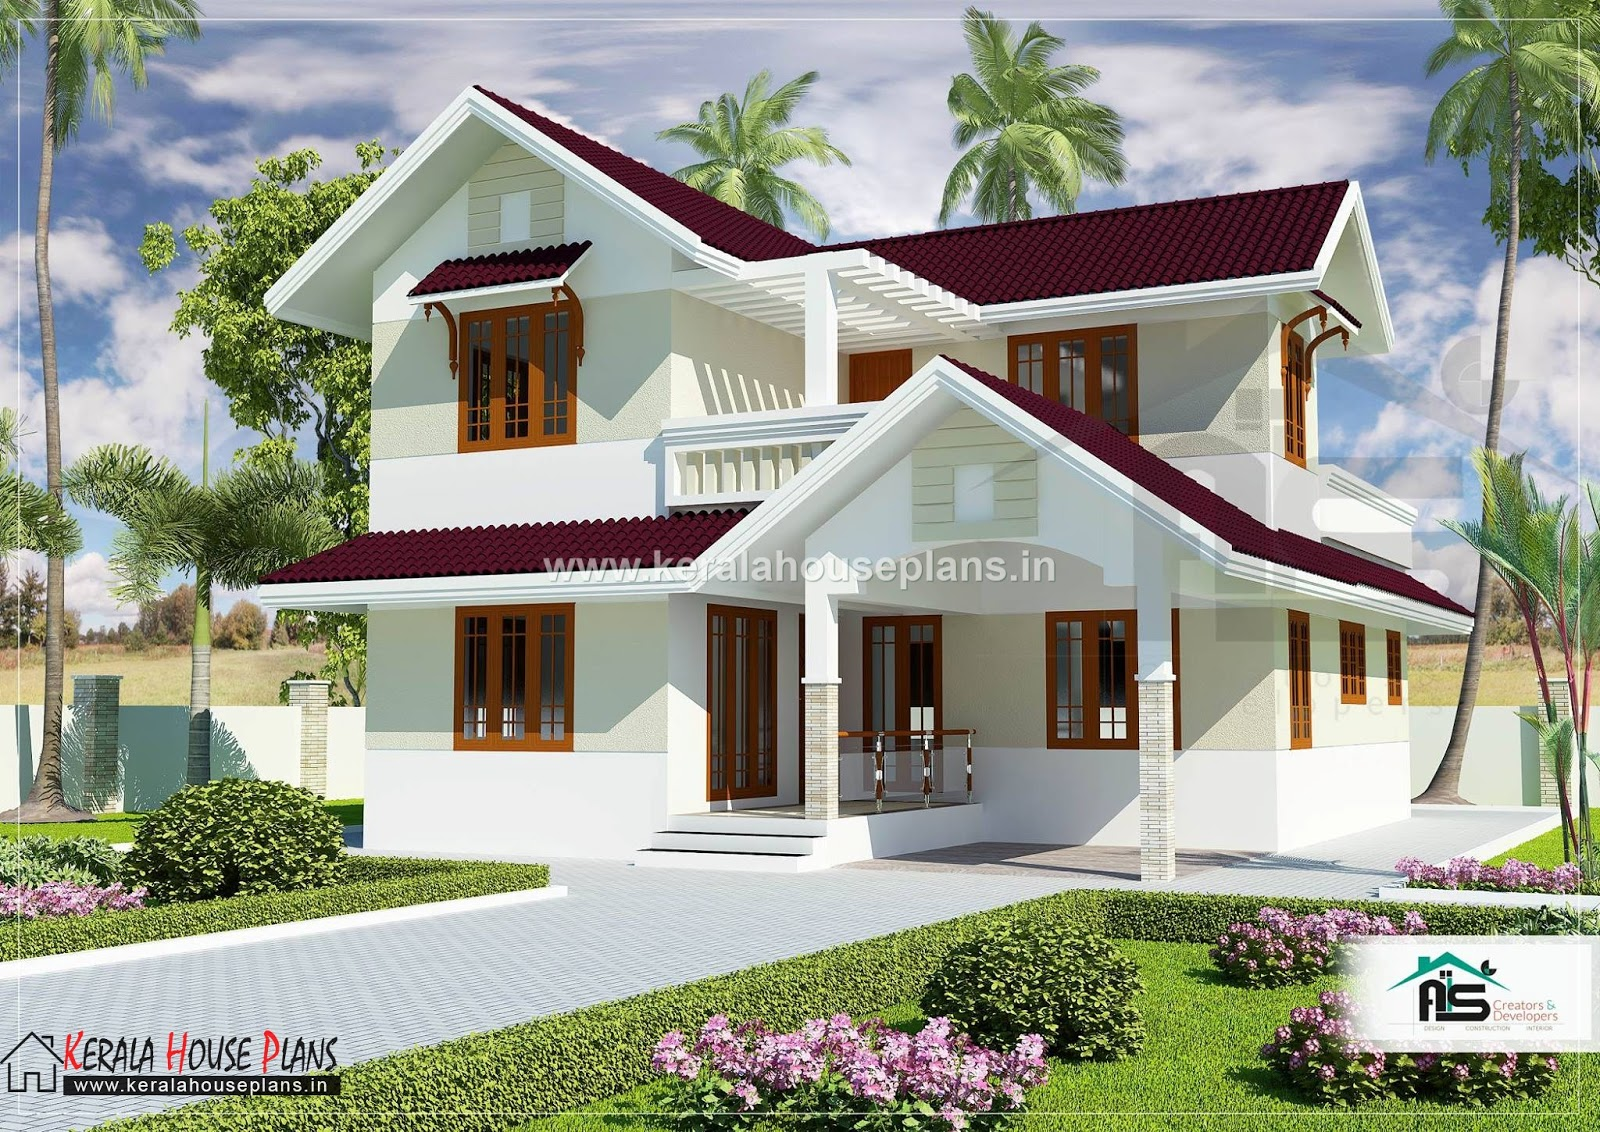 Kerala model house plans with elevation 1829 sqft kerala for New model home design